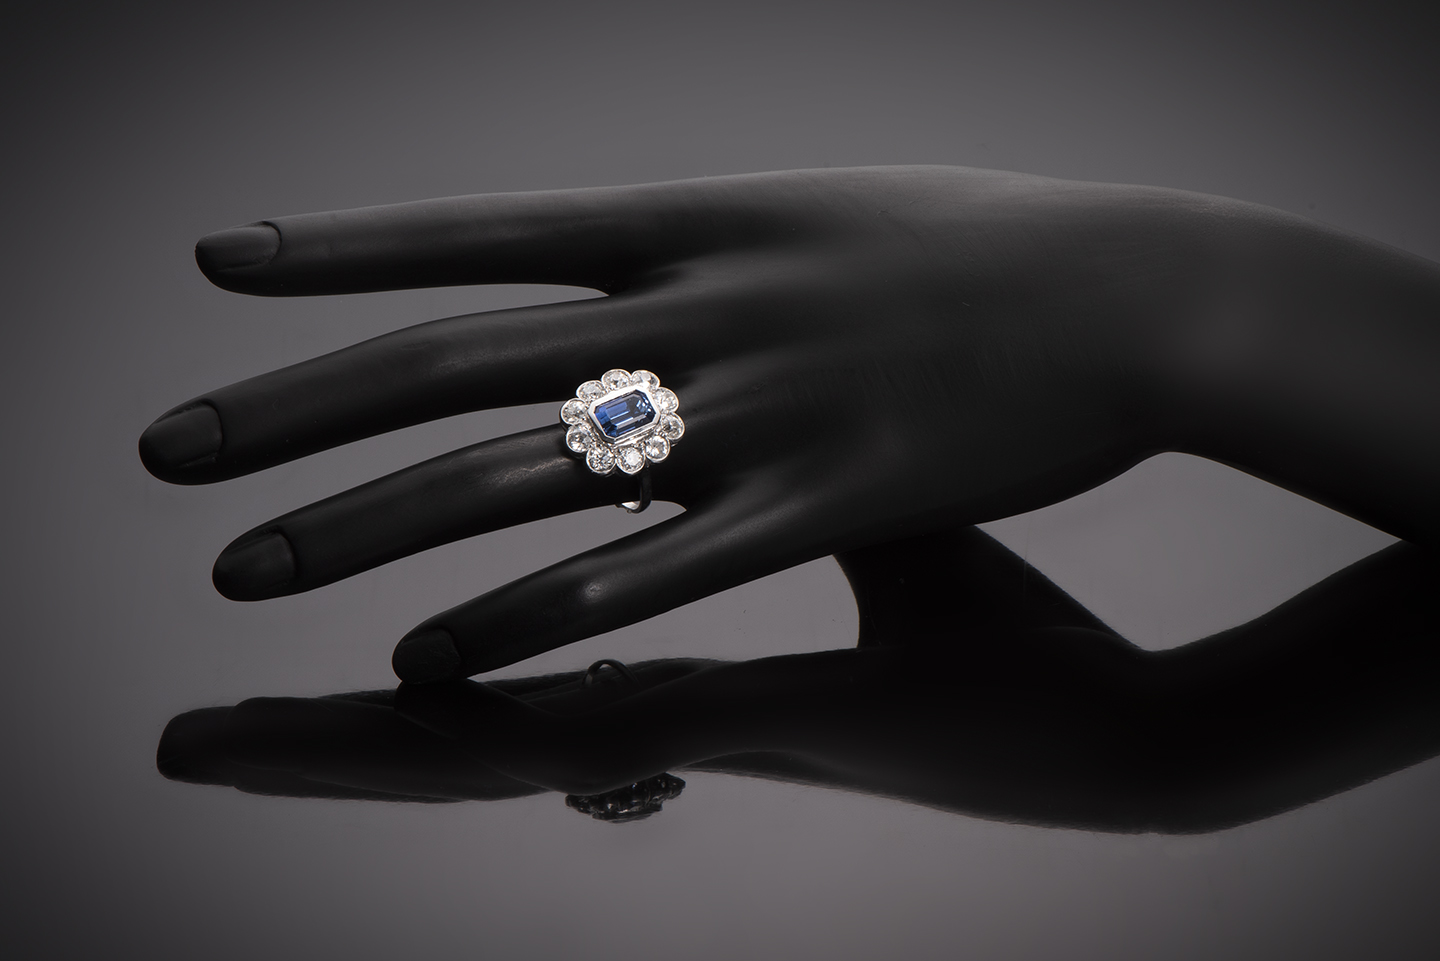 Bague Art Déco saphir bleu intense (3,50 carats, certificat CGL) diamants (1,80 carat)-3